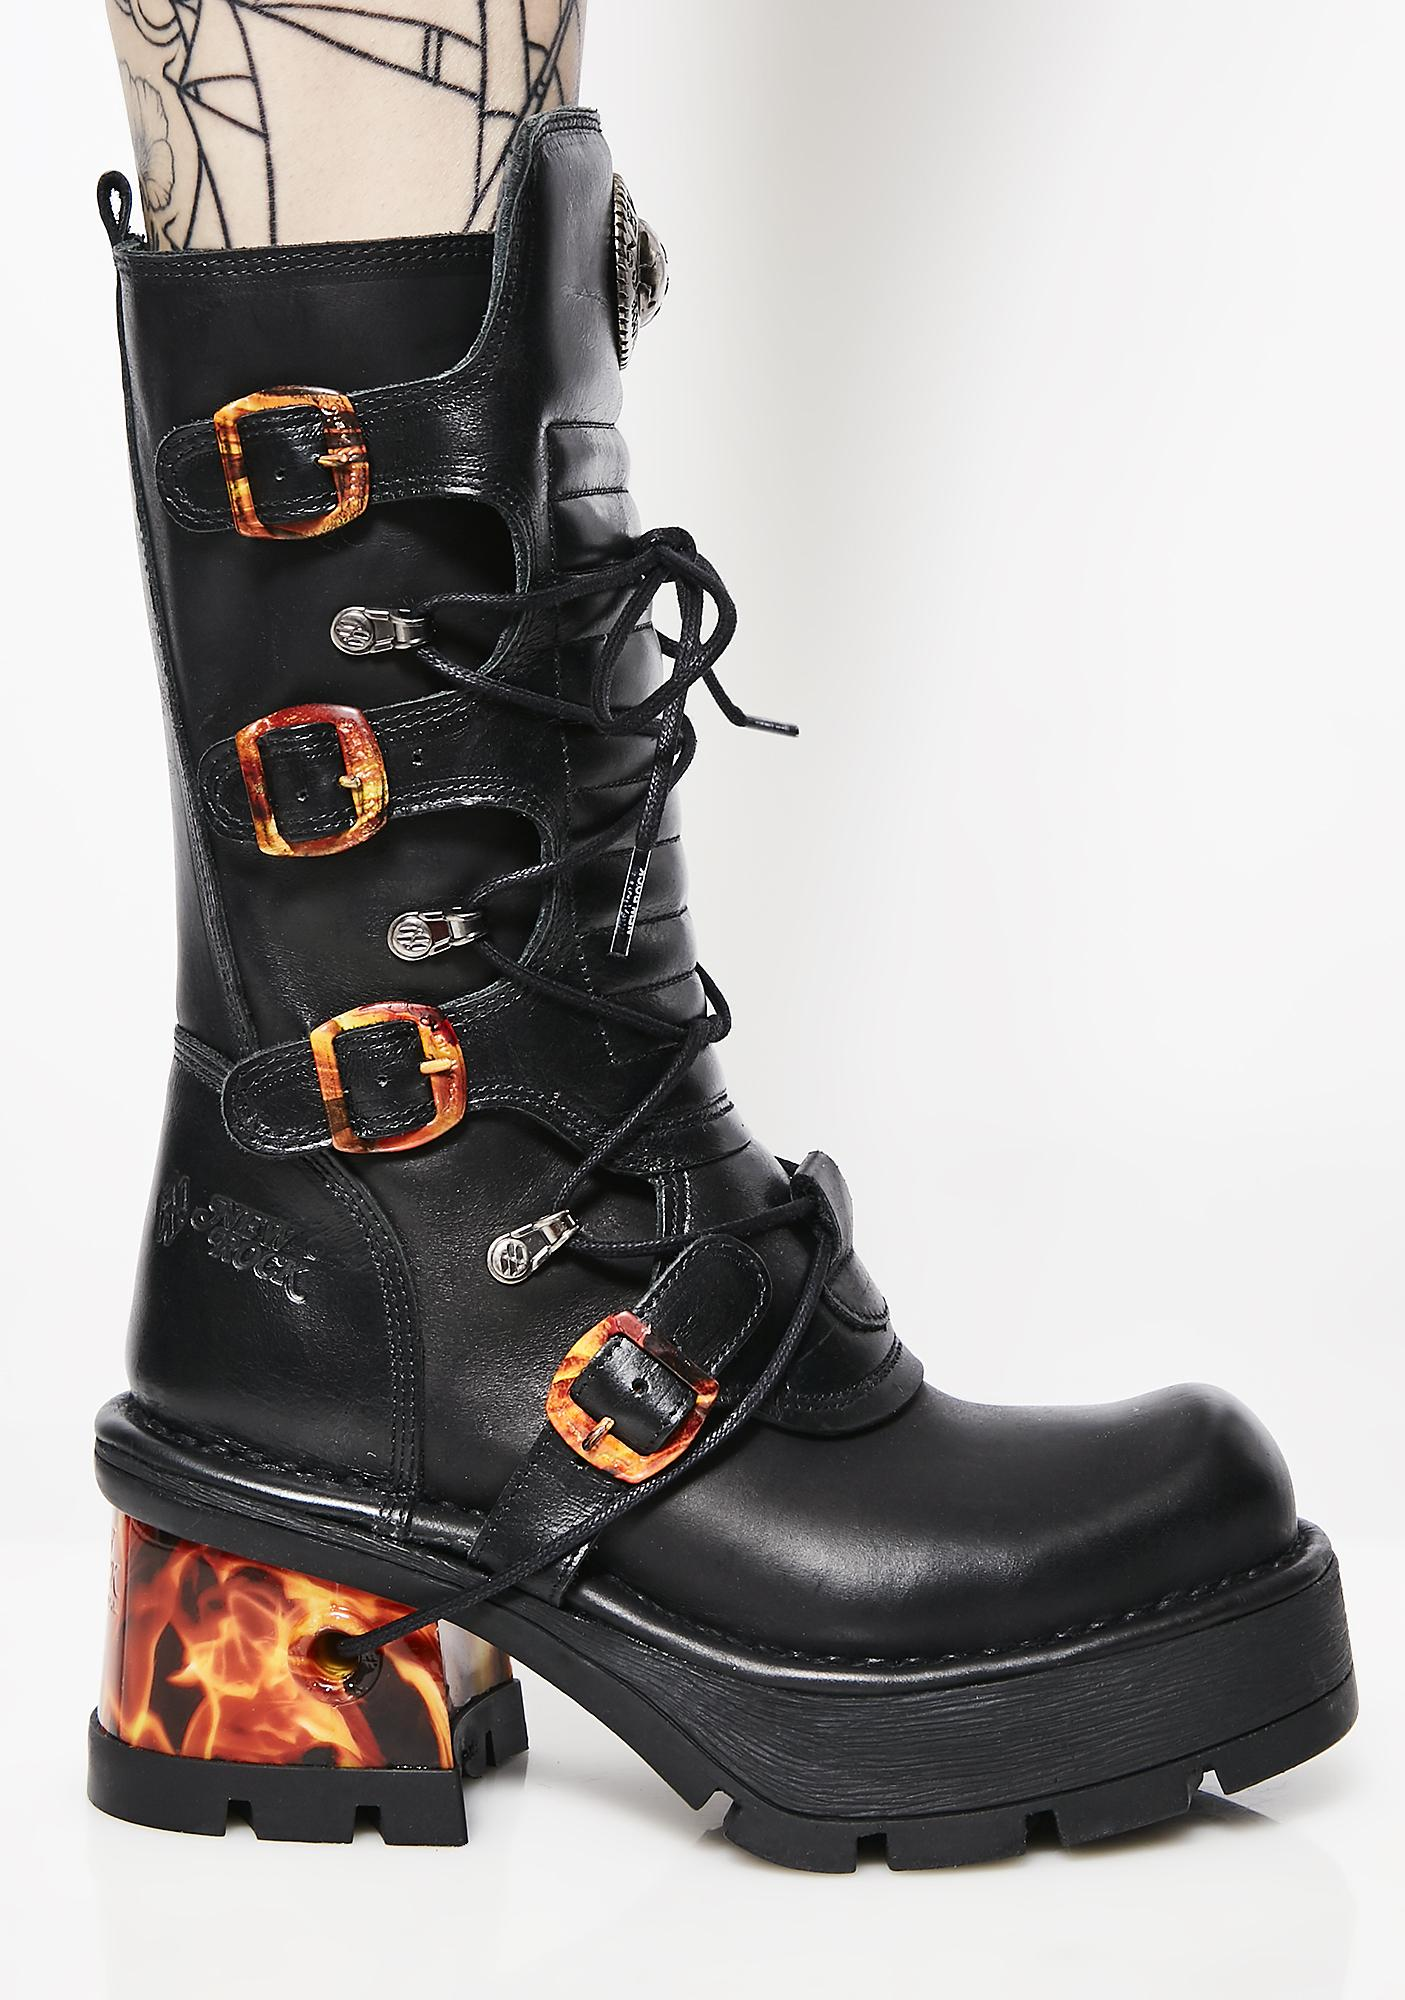 New Rock Flamin' Hottie Flame Boots